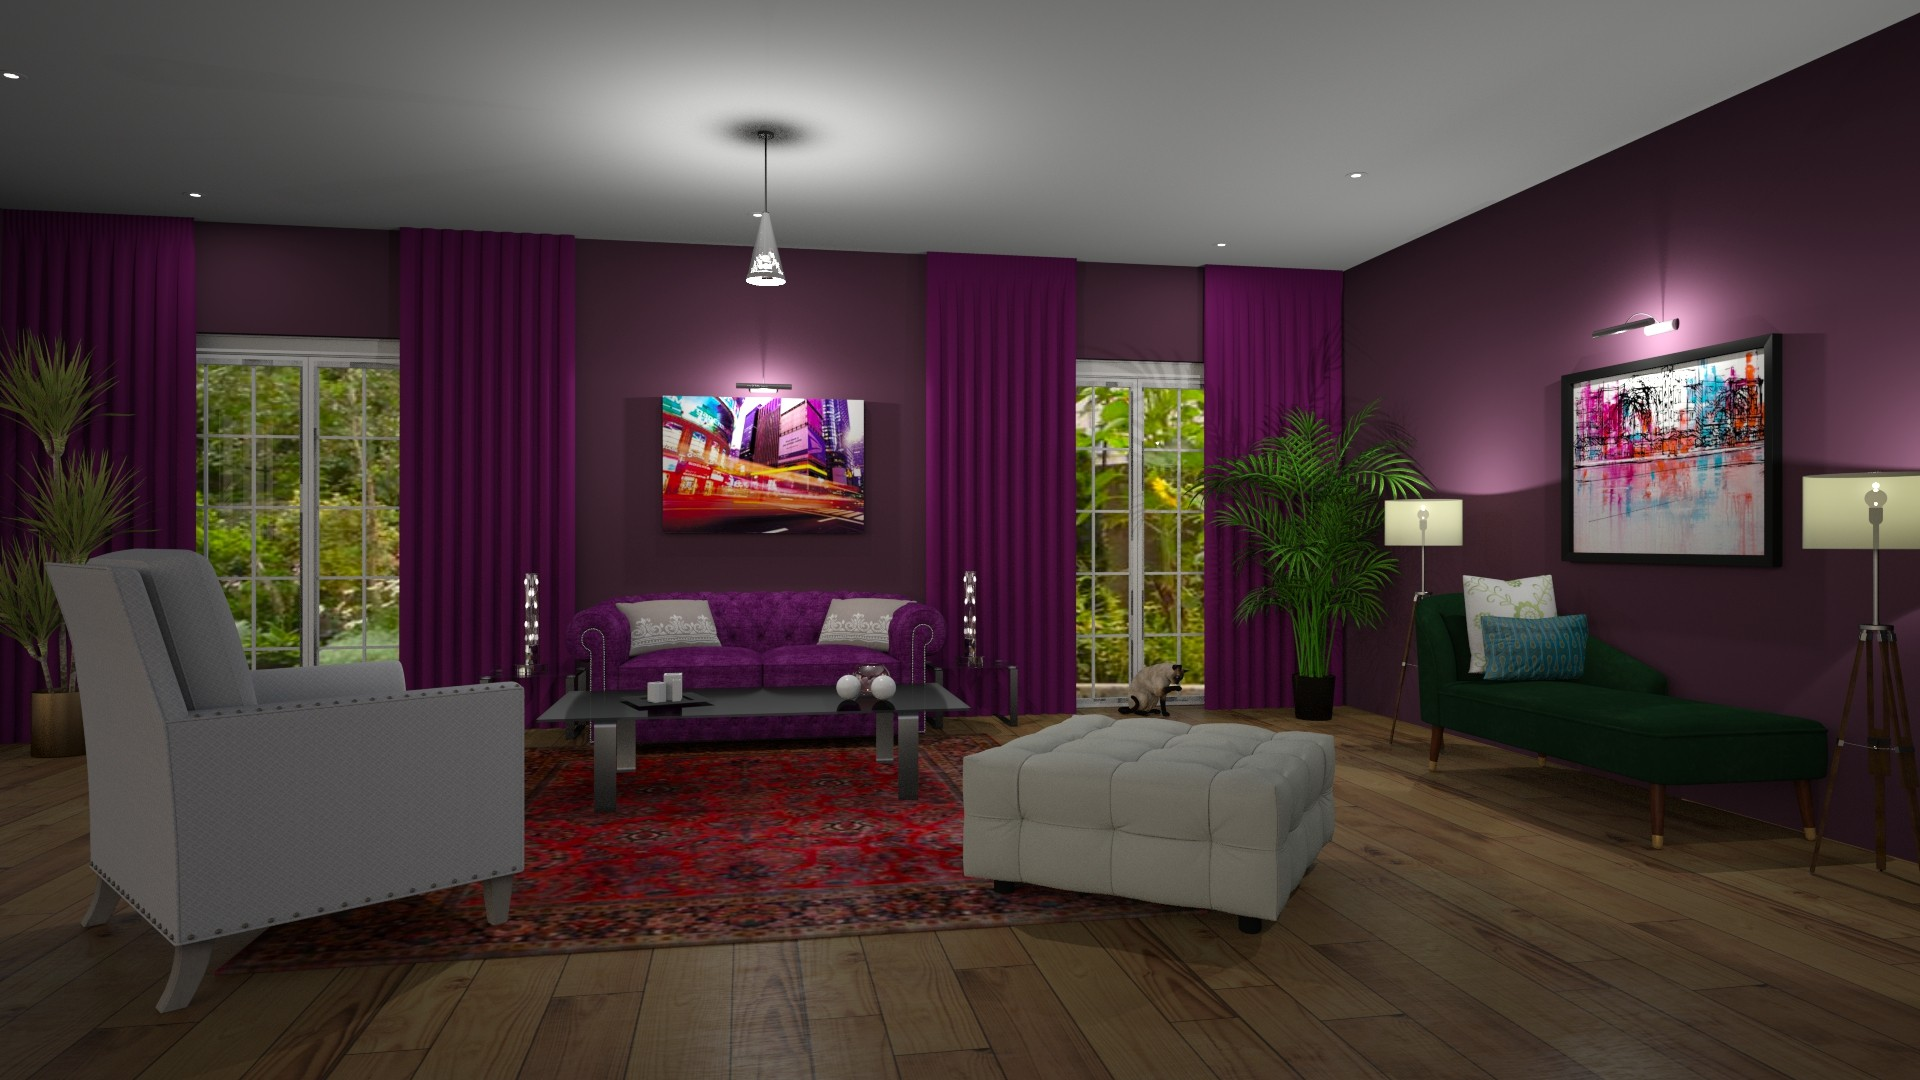 Modern Global Edesign of a Living room using Benjamin Moore Regal Select Grape Juice